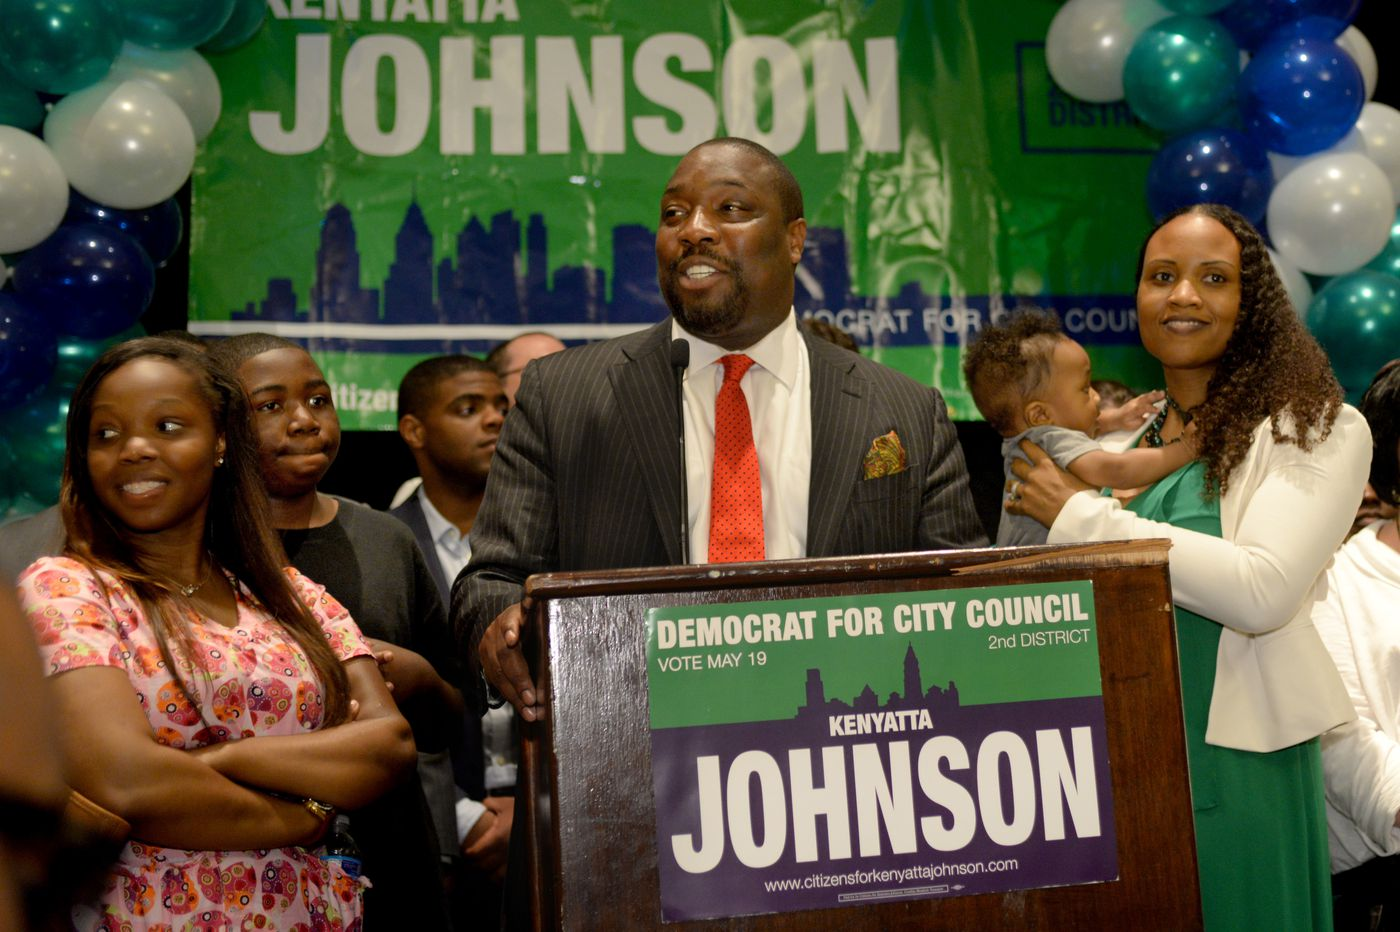 Johnny Doc case: Which city councilman needed a soda tax 'hug'? Kenyatta Johnson, sources say.